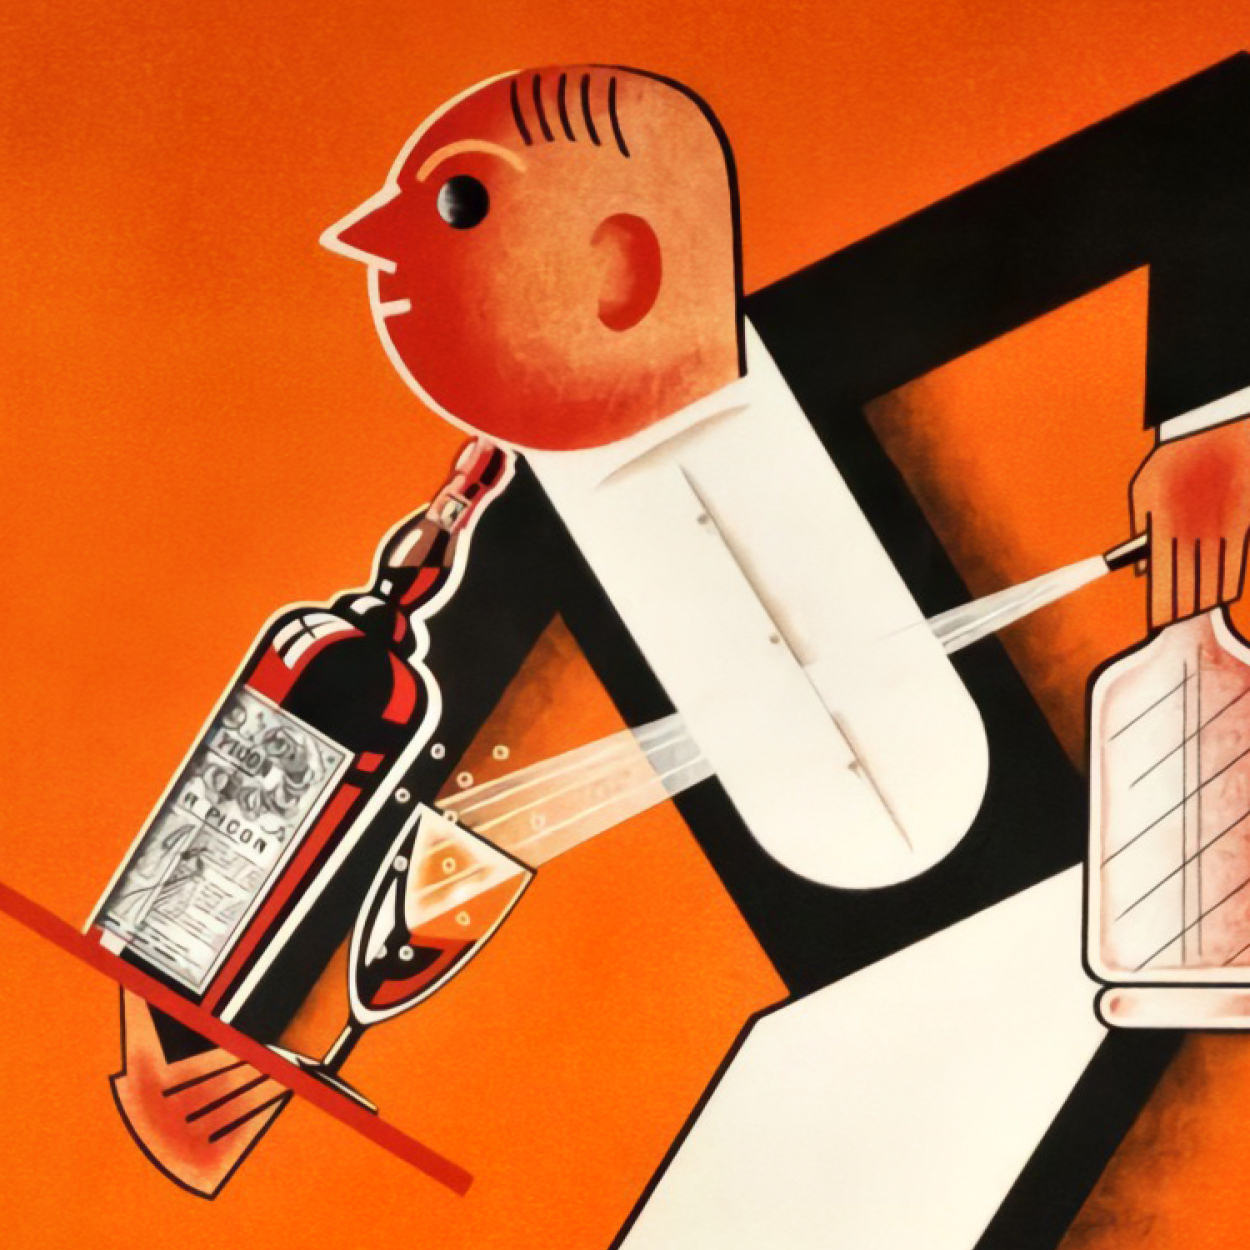 An Art Deco poster with a waiter figurine spraying soda water into a cocktail glass while a holding a tray with a bottle of Picon.